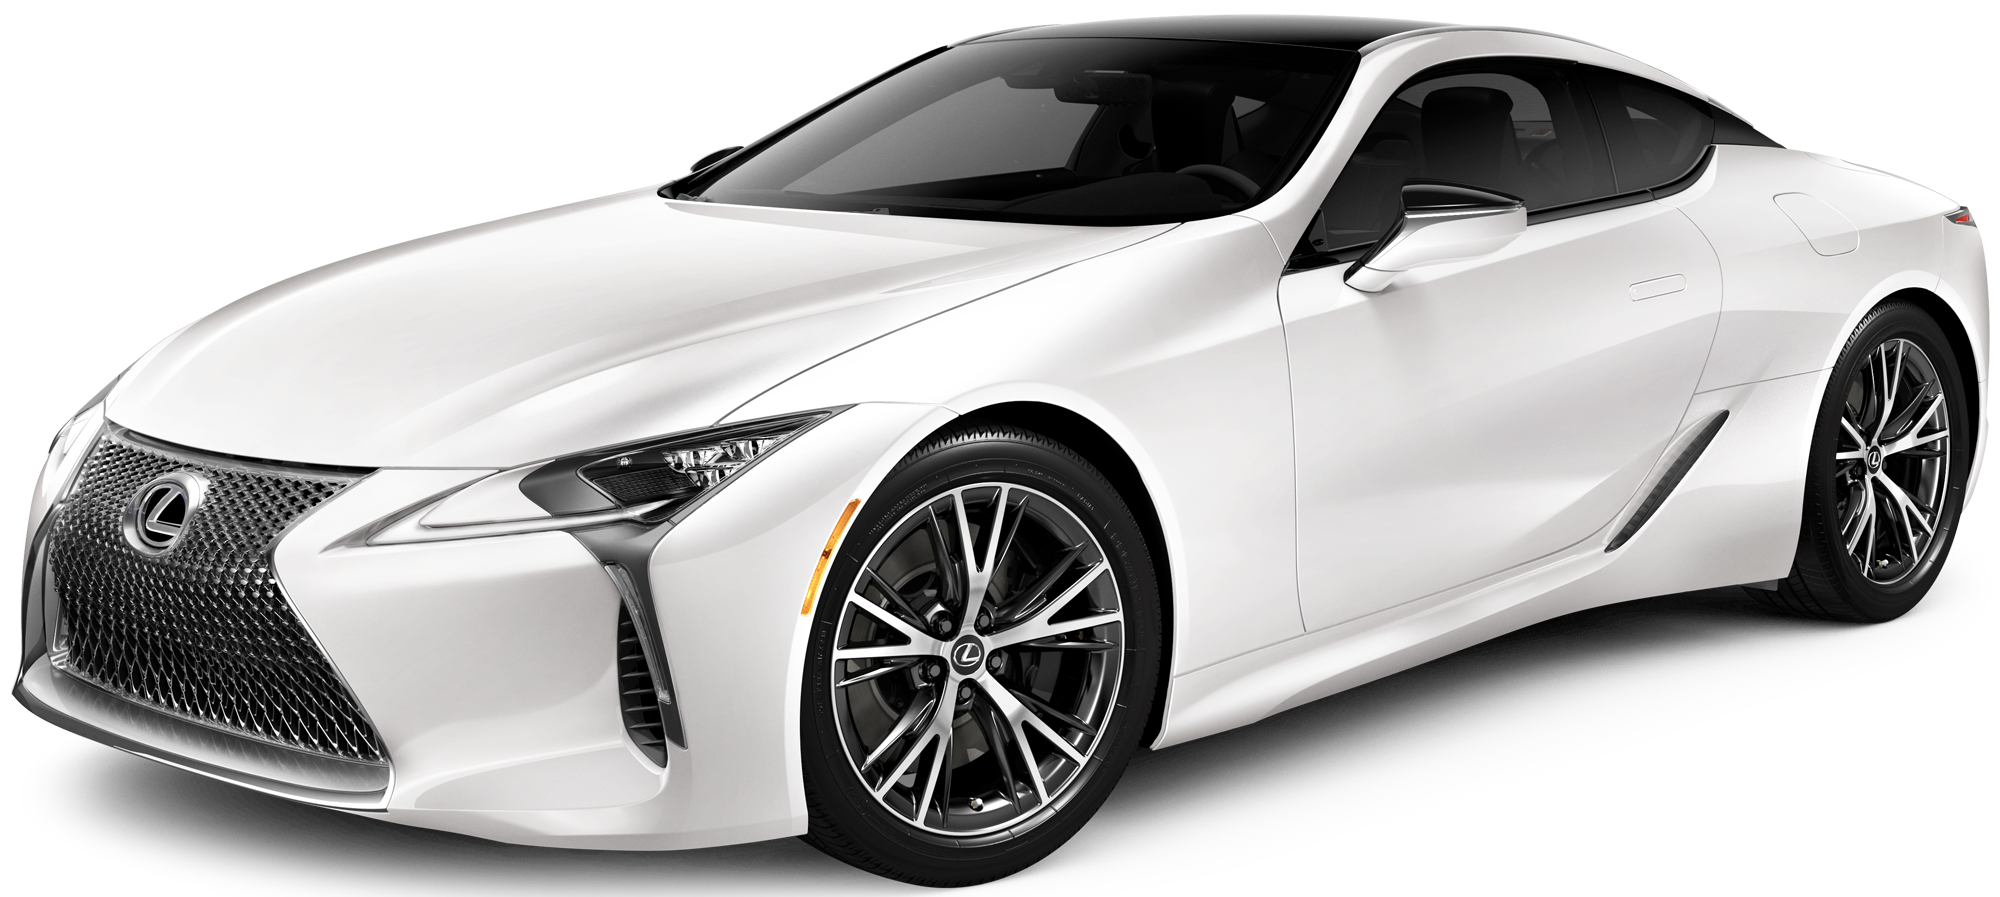 2019 lexus lc 500 incentives  specials  u0026 offers in van nuys ca